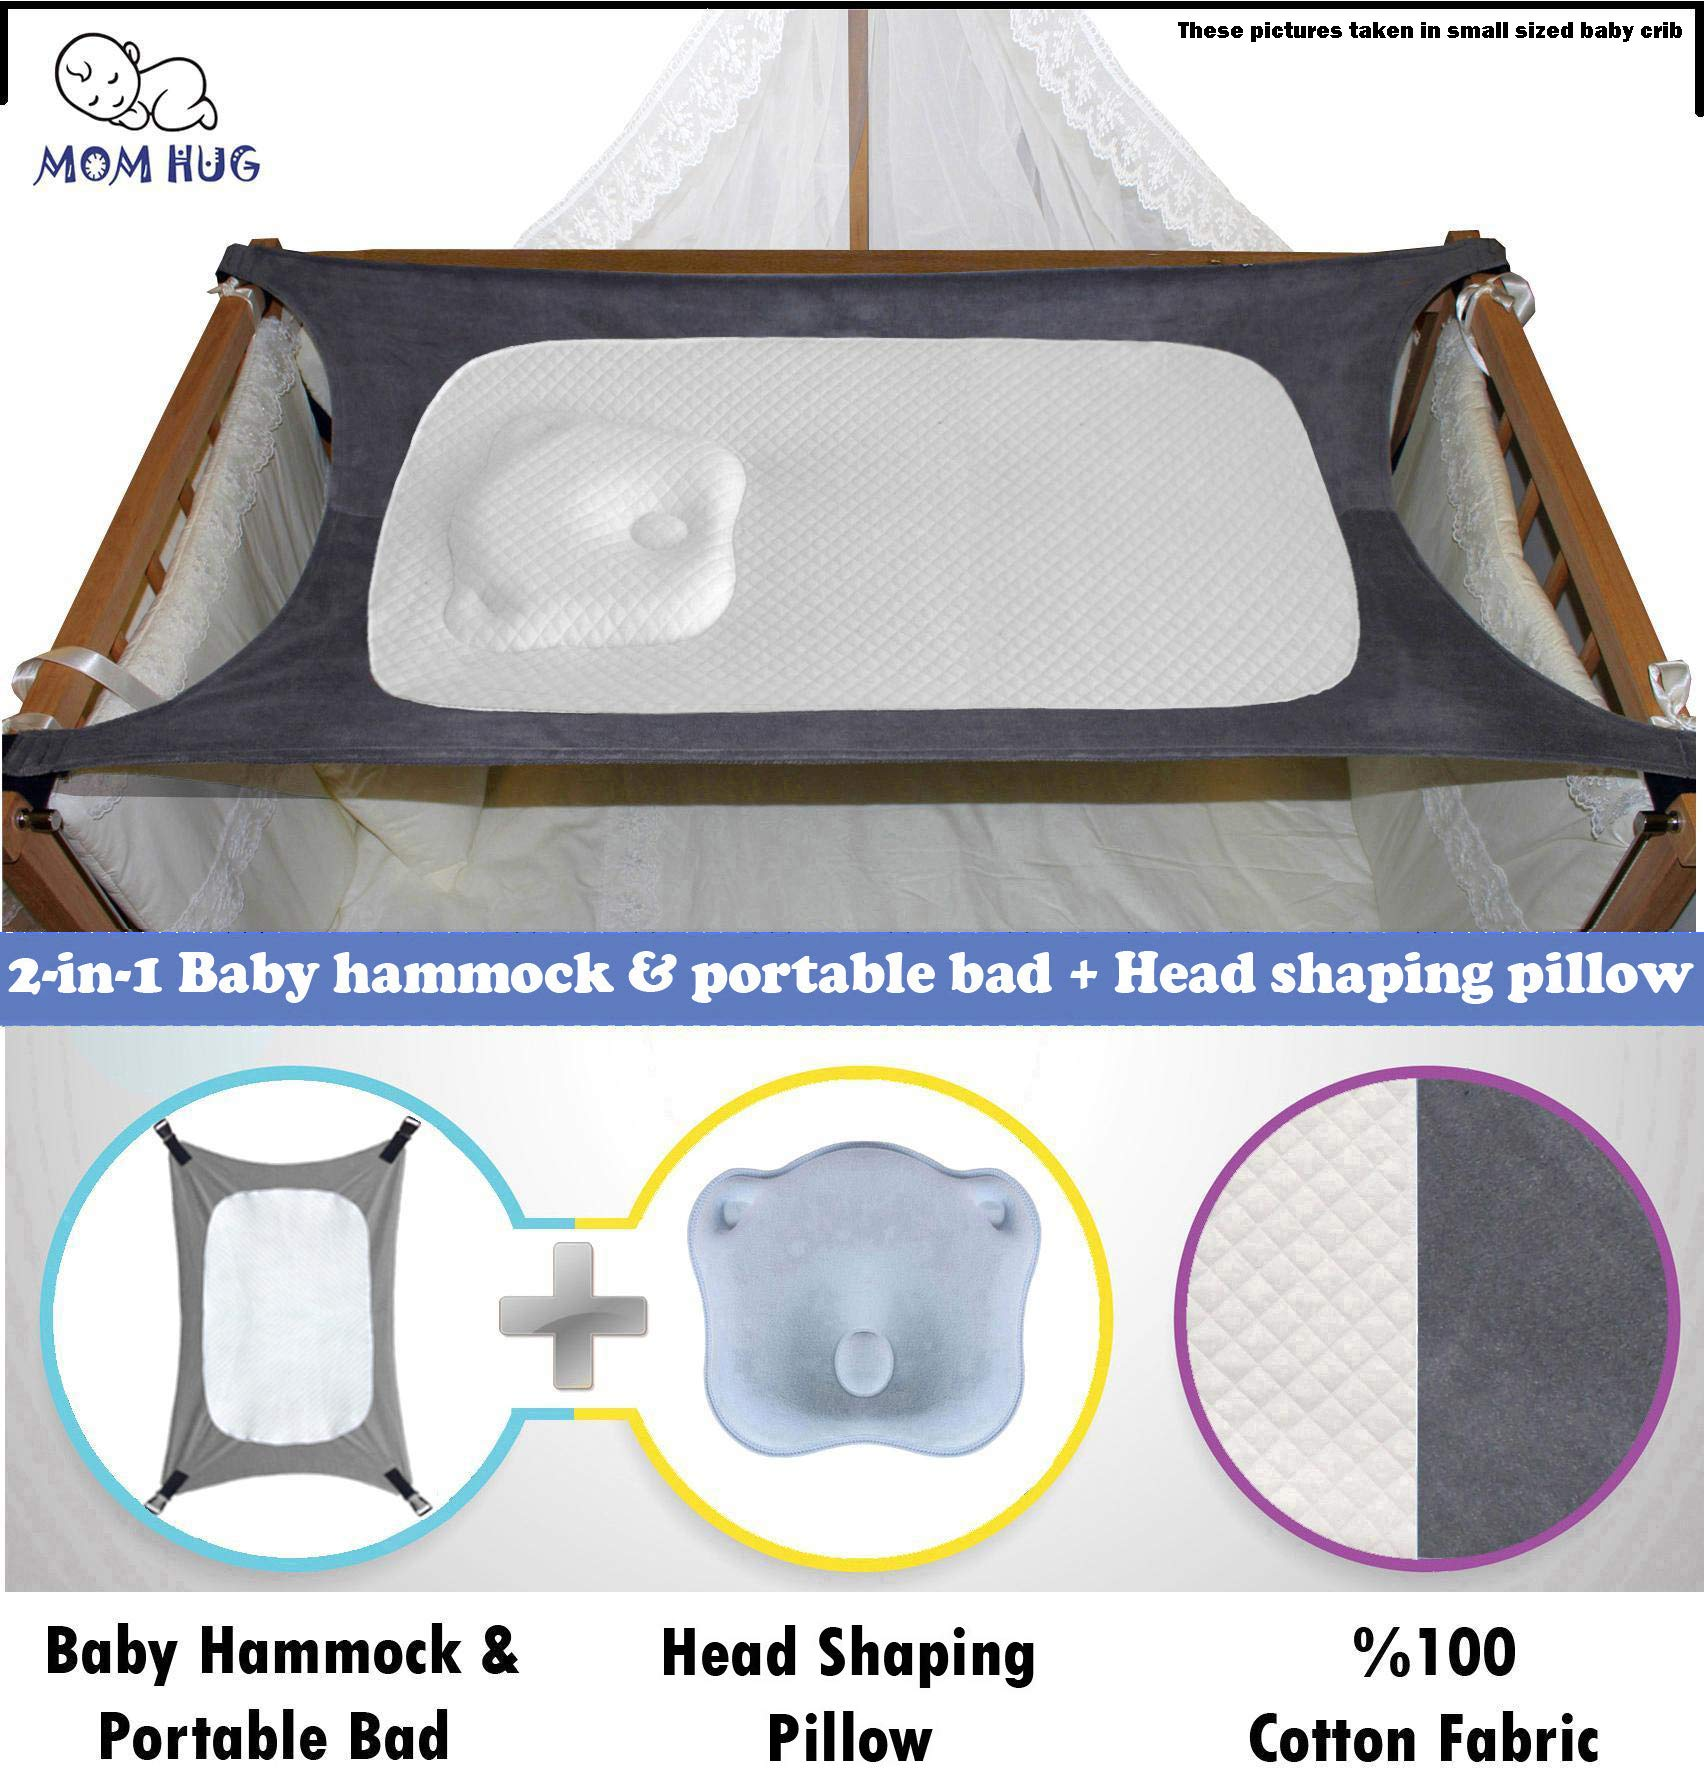 2-in-1 Head Shaping Pillow Backed Newborn Baby Hammock for Crib and Portable Bed,%100 Cotton Comfortable,Strong Safety Measures Quality Assured Breathable Enhanced Nursery Womb Bassinet by Mom Hug (Image #1)